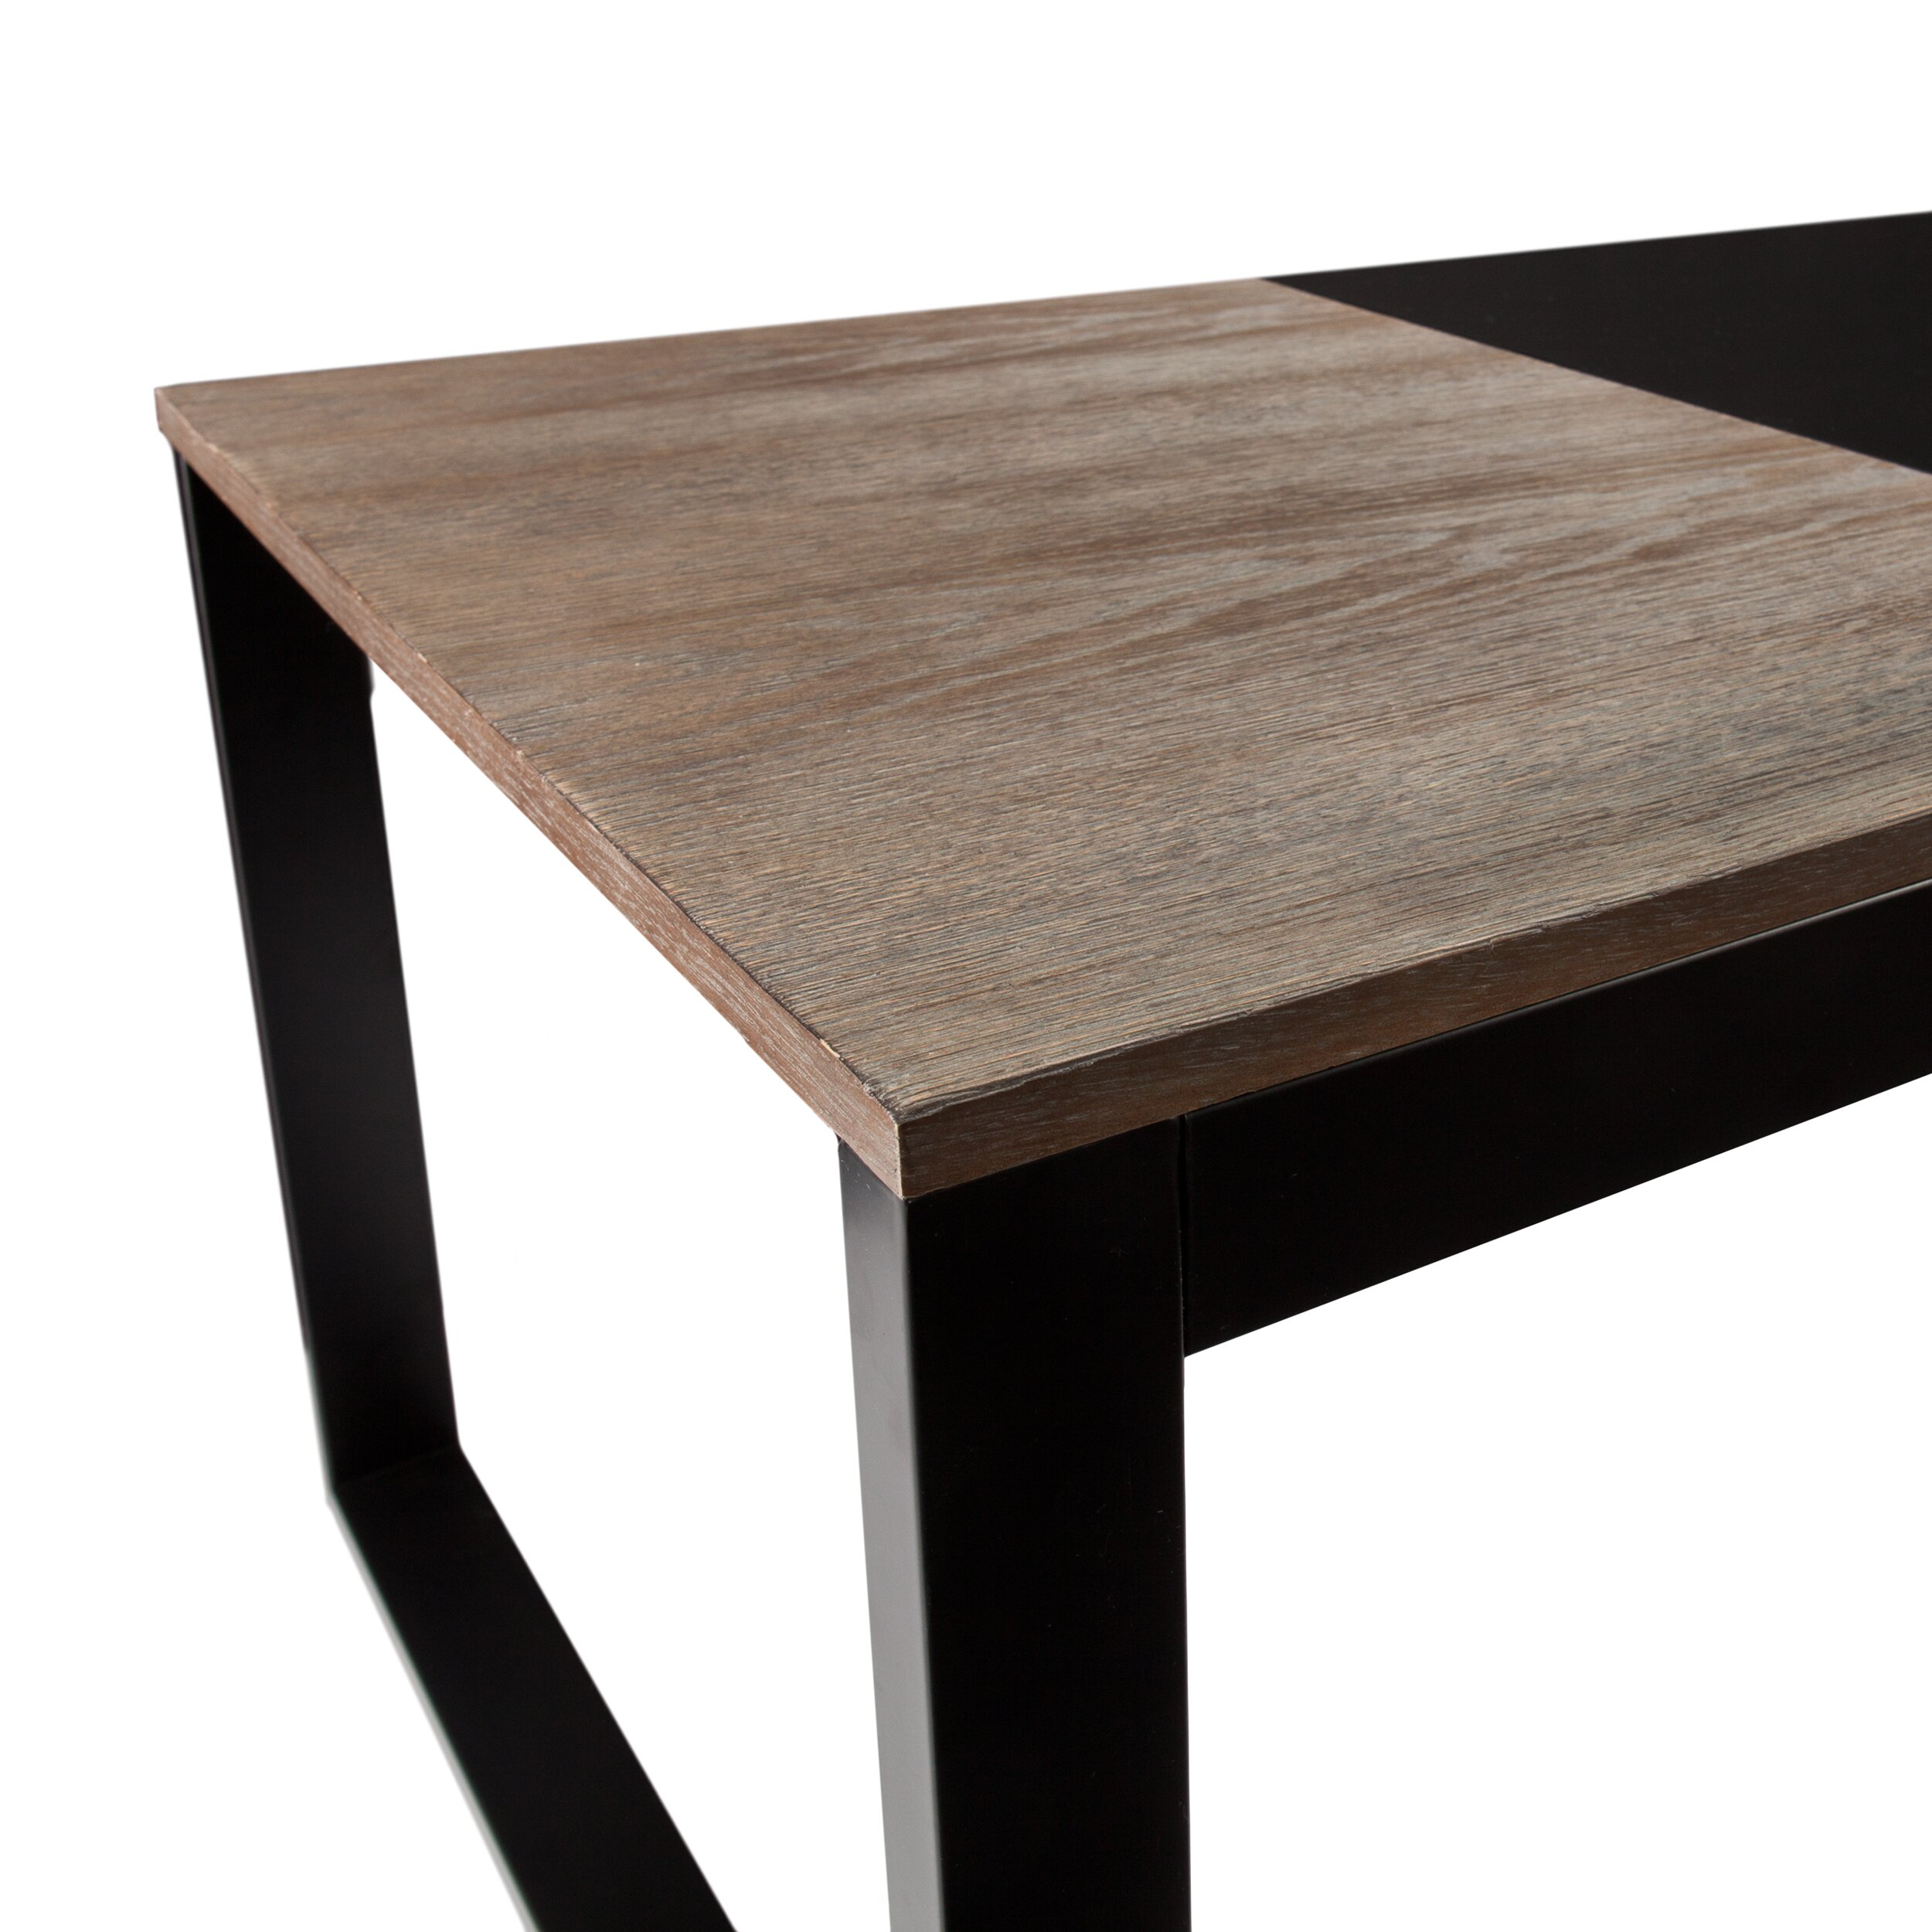 Wood St Martin Coffee Table: Holly & Martin Lydia Coffee Table & Reviews